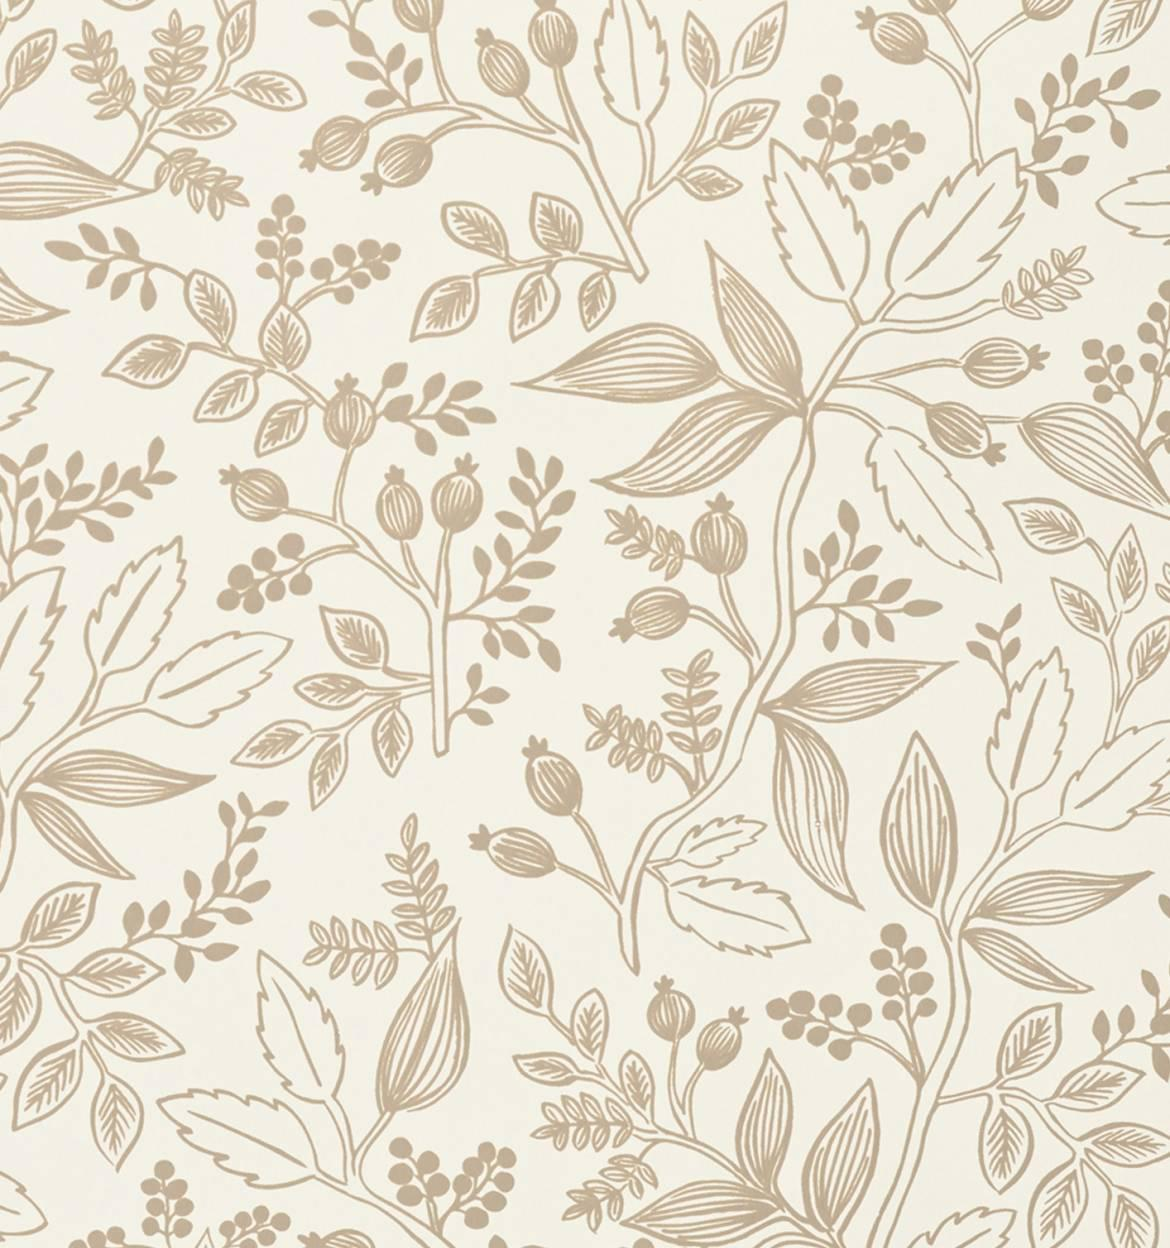 Queen Anne (Taupe) Wallpaper by RIFLE from RIFLE PAPER CO.